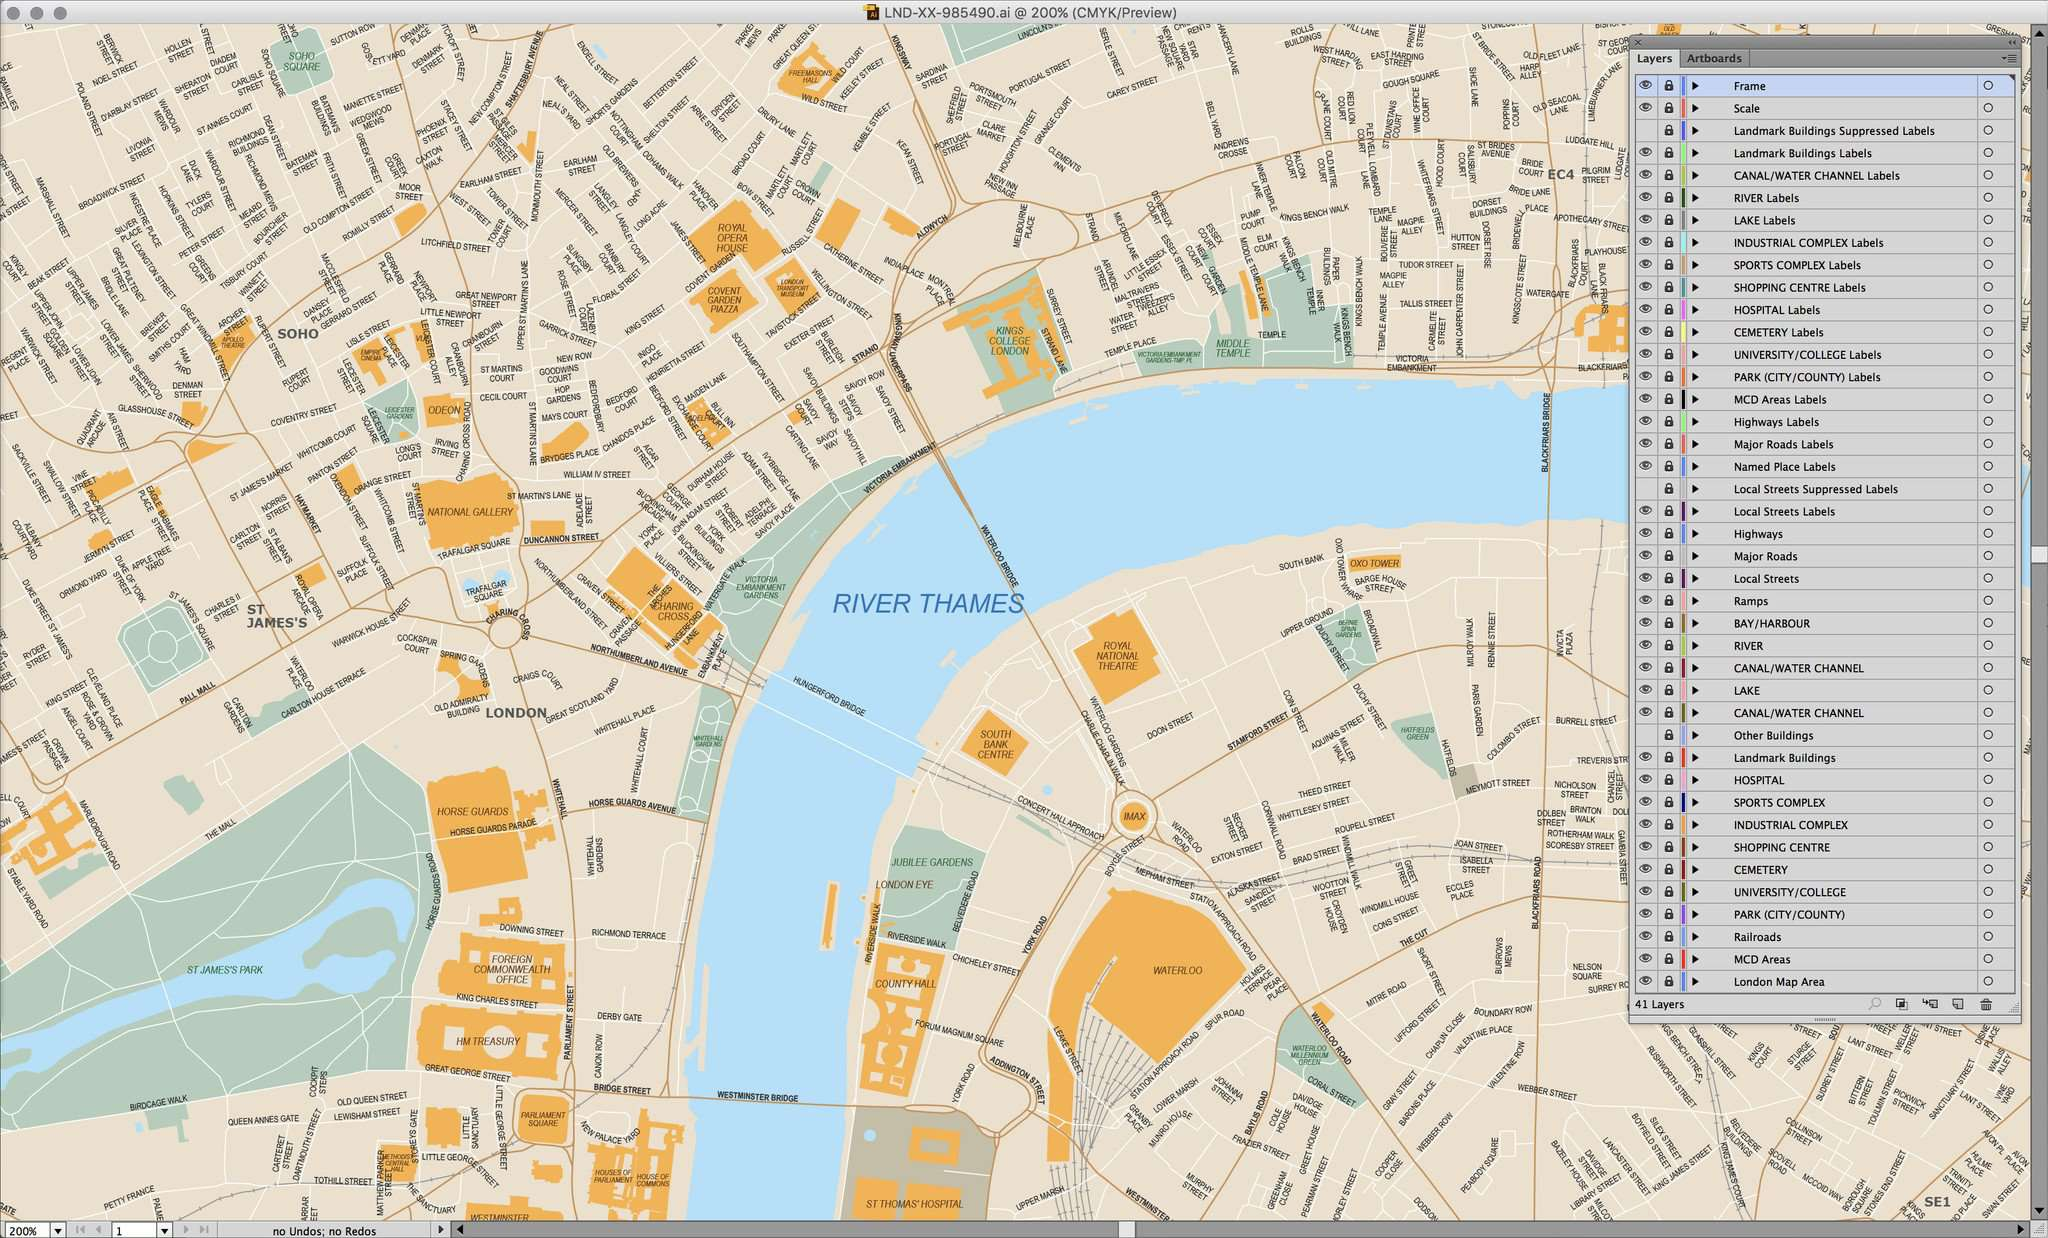 London Map Street.London Center Map 96 Square Miles Poster Size With All Local Streets